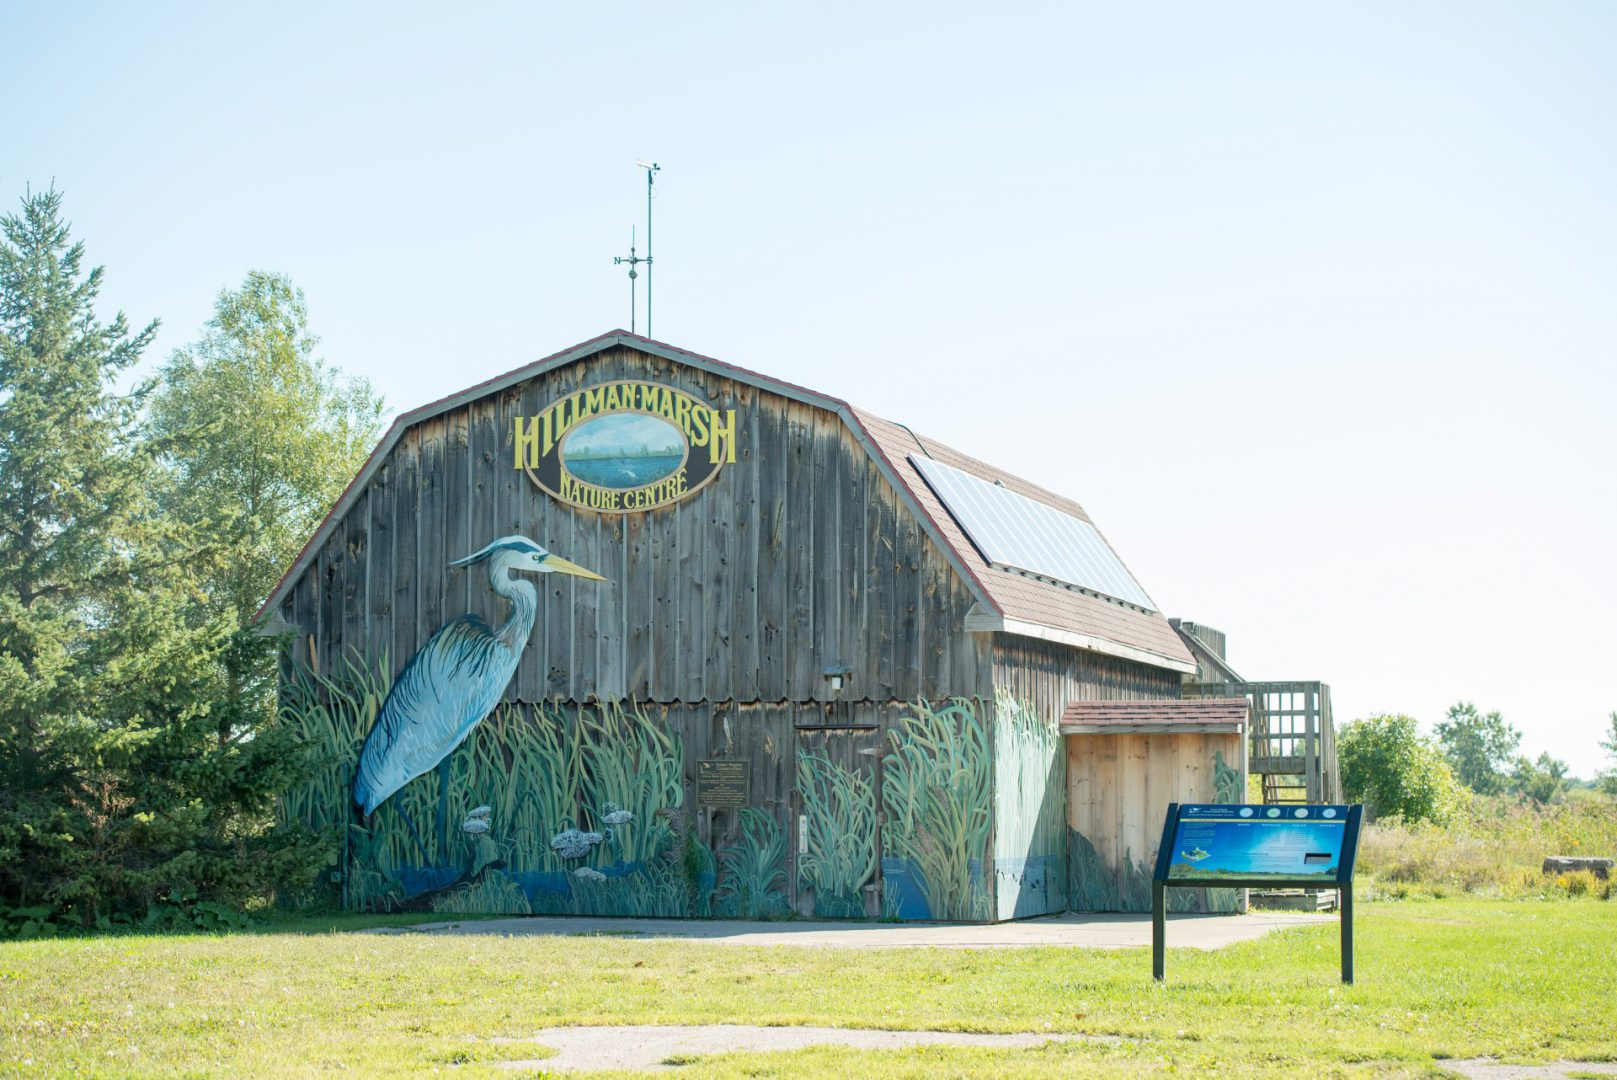 Hillman Marsh Nature Centre and mural.